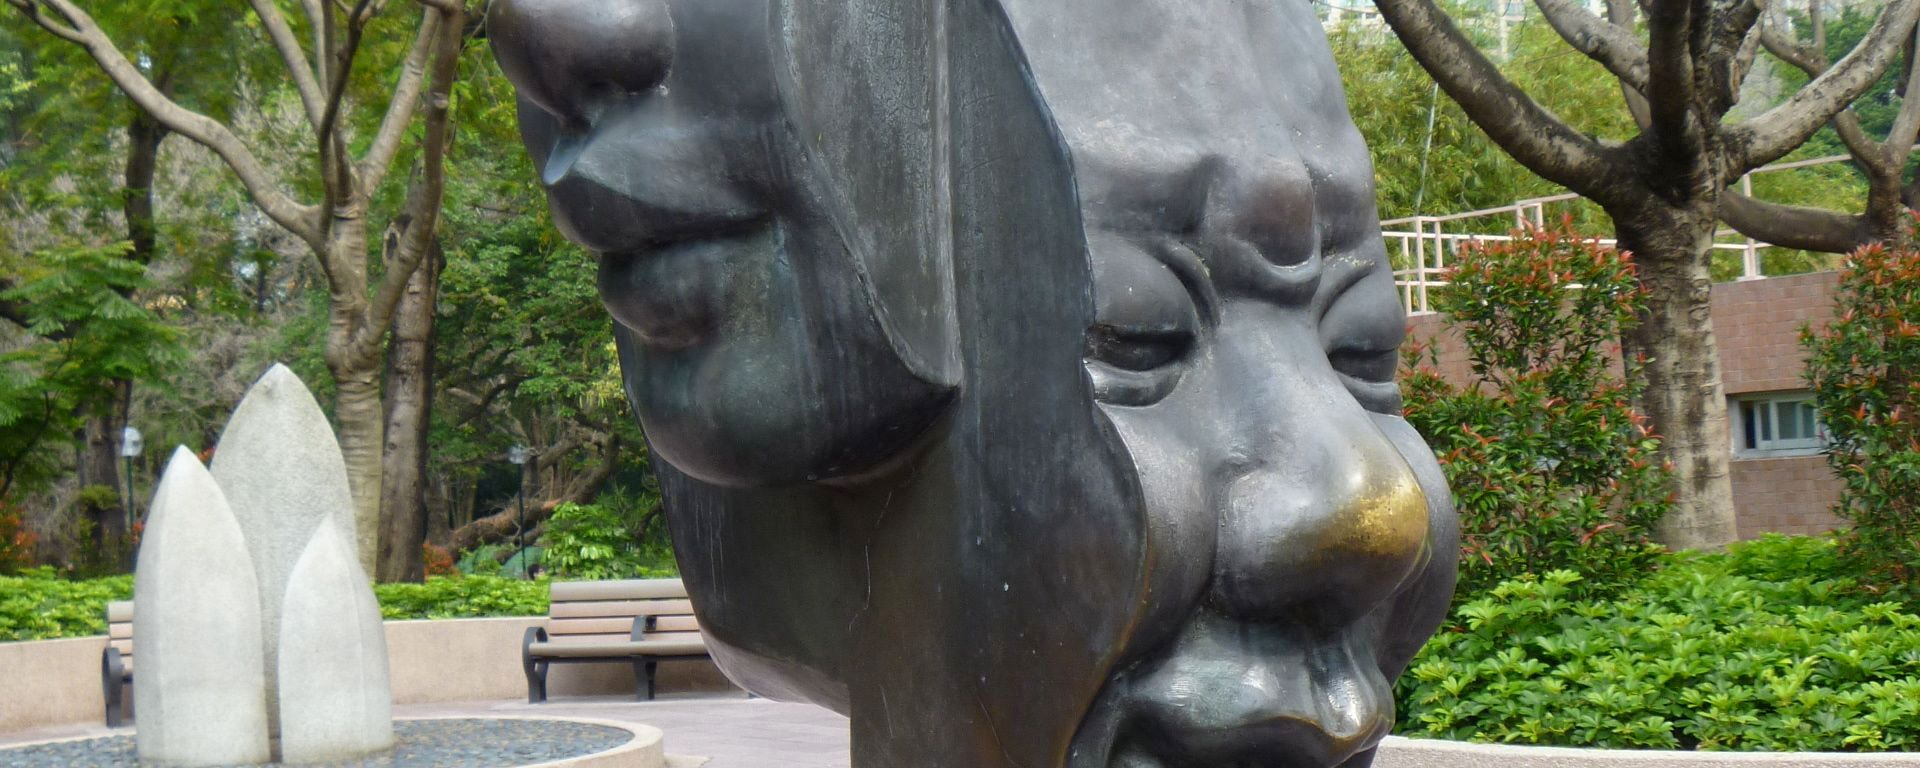 Sculpture at Kowloon Park